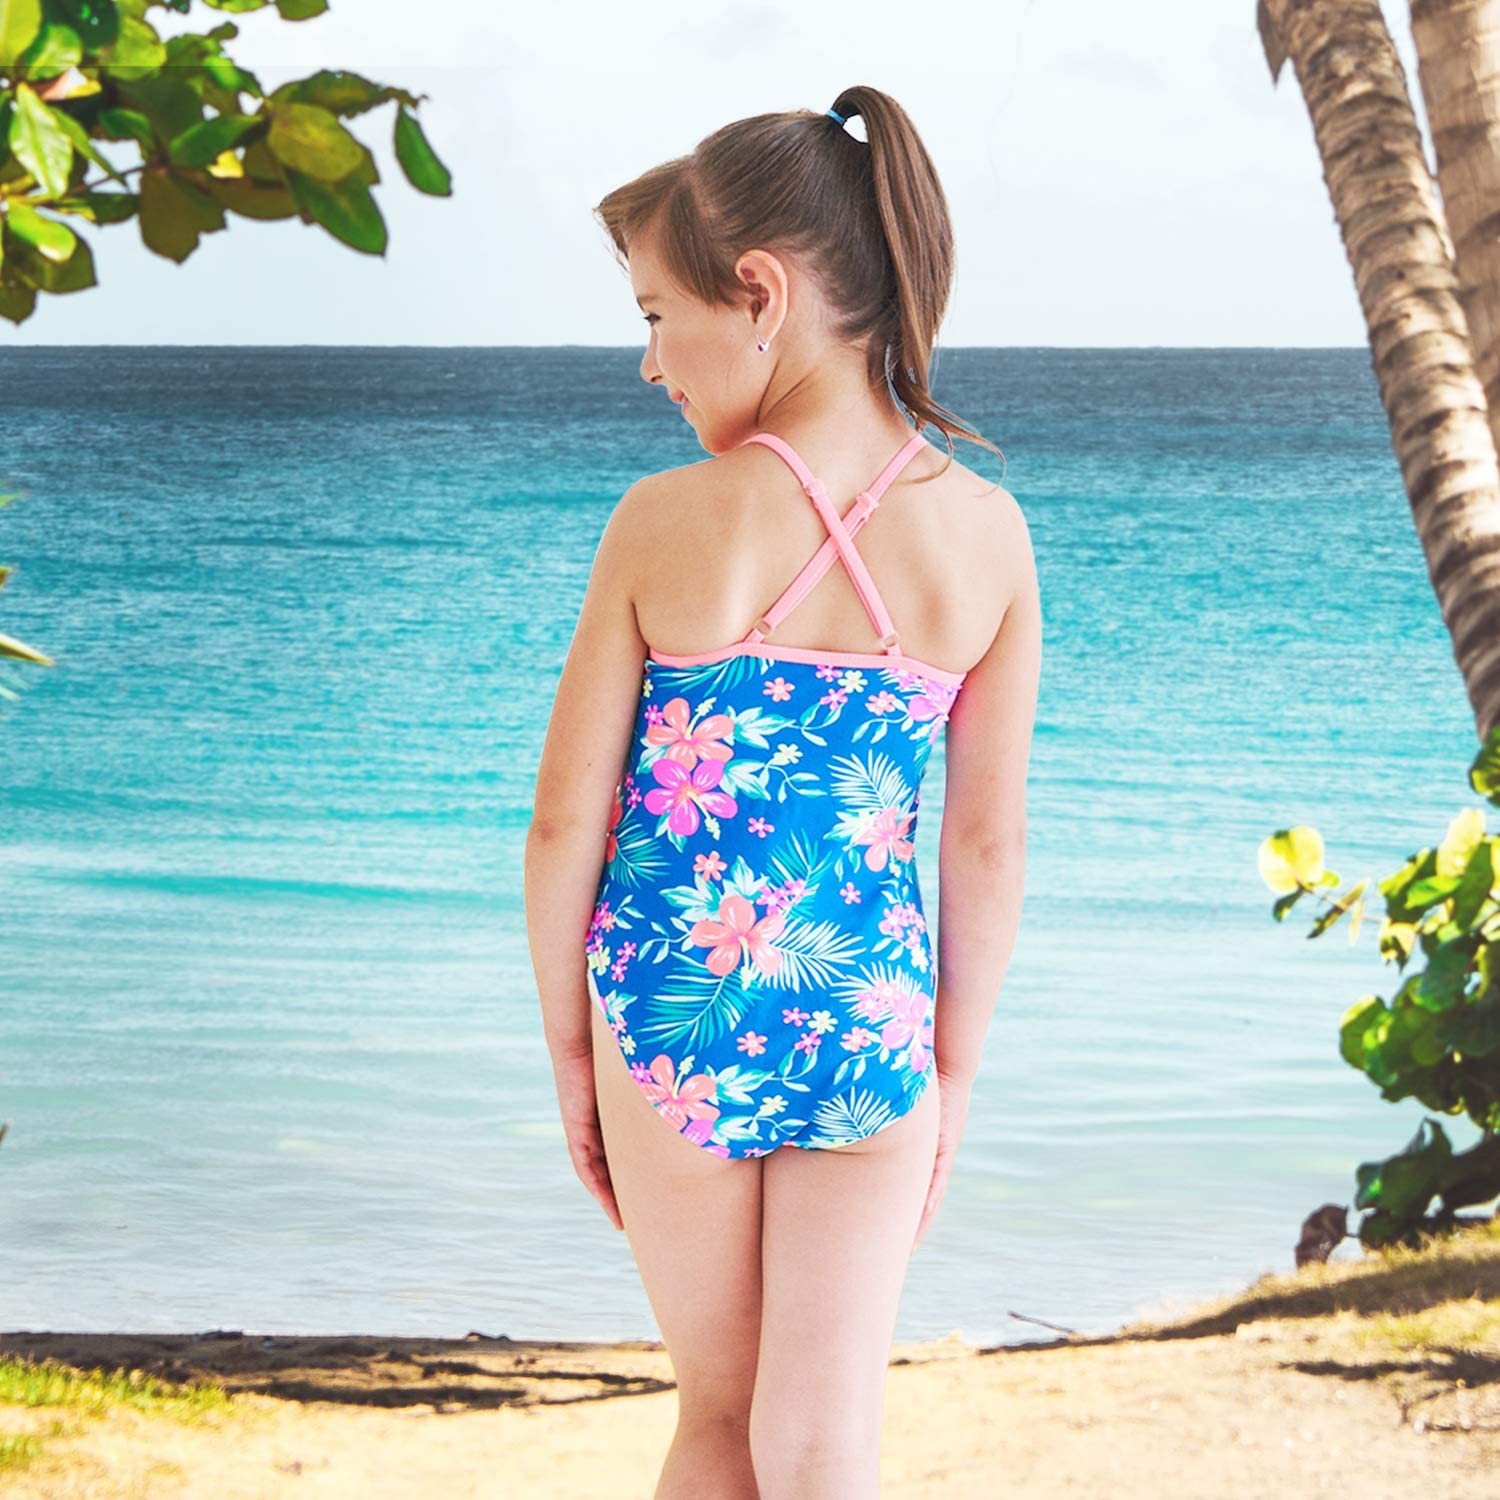 Moon Tree Girls One Piece Swimsuits Hawaiian Ruffle Swimwear Beach Bathing Suit 5T Blue